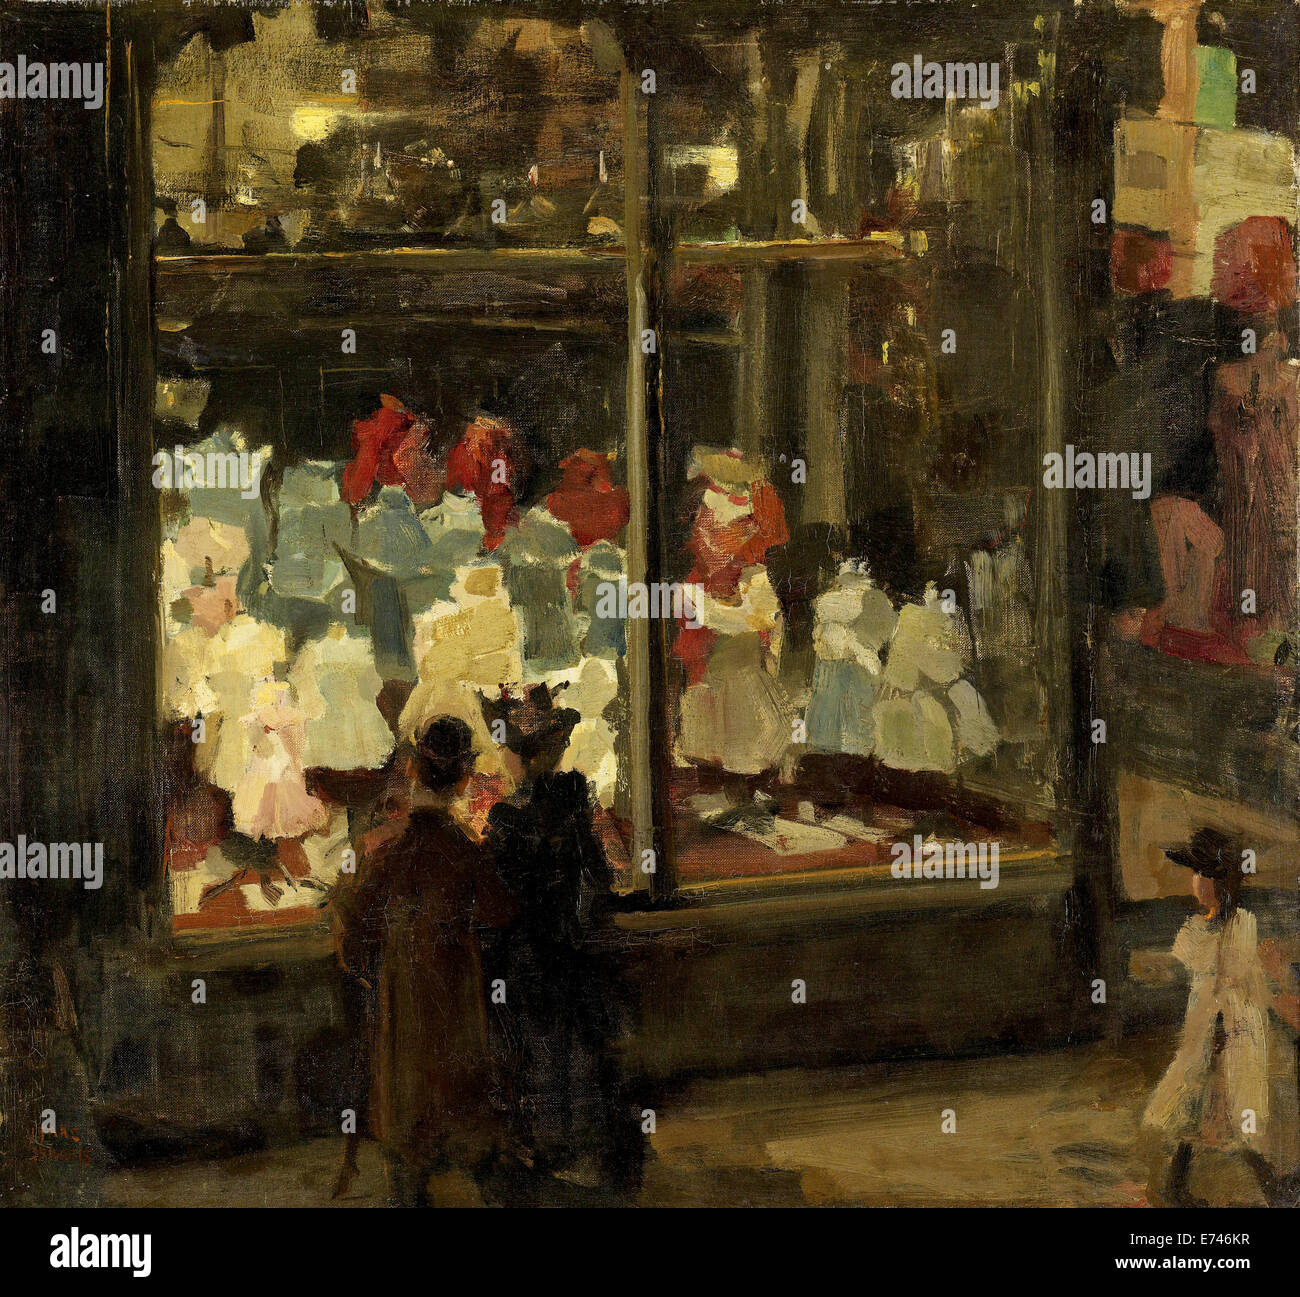 Shop Window - by Isaac Israels, 1894 Stock Photo